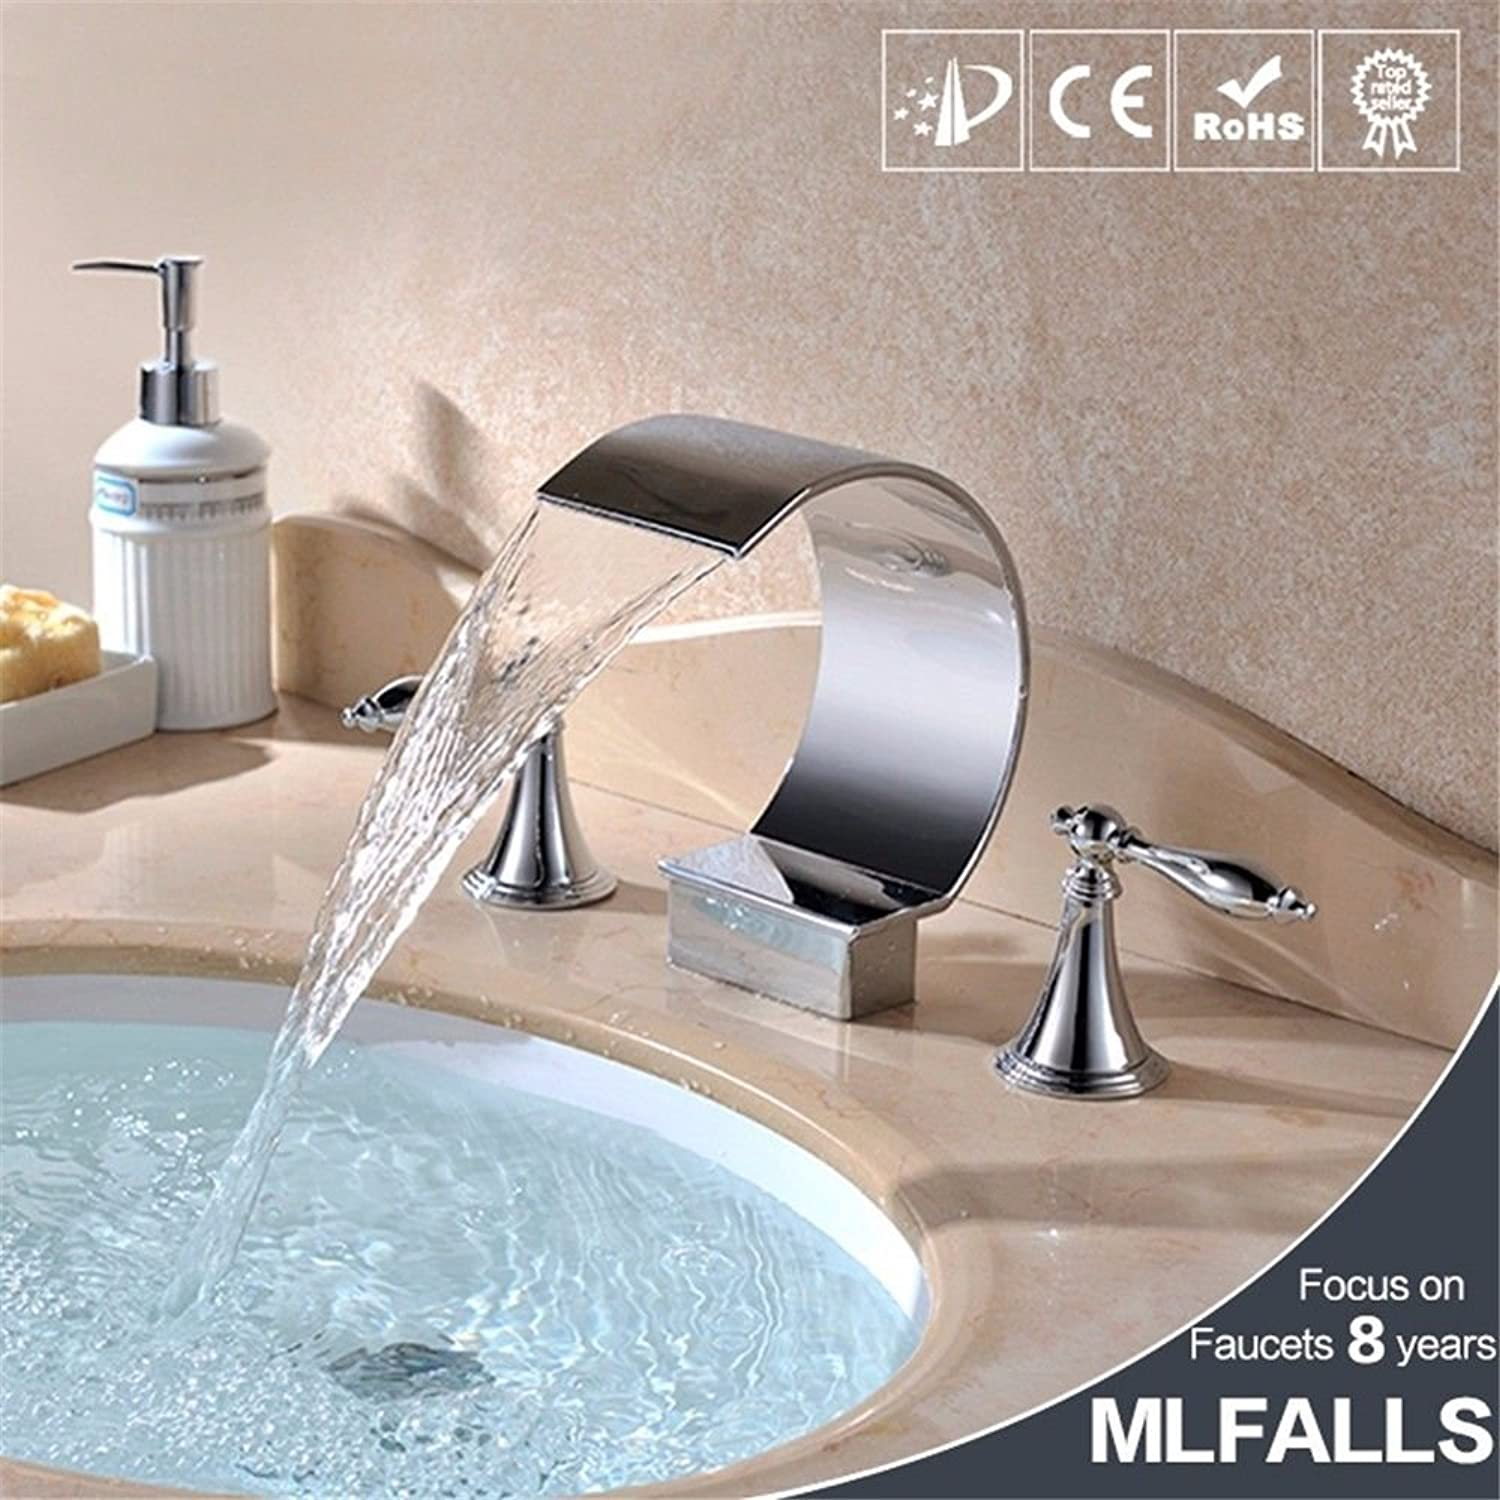 Lalaky Taps Faucet Kitchen Mixer Sink Waterfall Bathroom Mixer Basin Mixer Tap for Kitchen Bathroom and Washroom Full Copper Chrome Waterfall Hot and Cold Hands